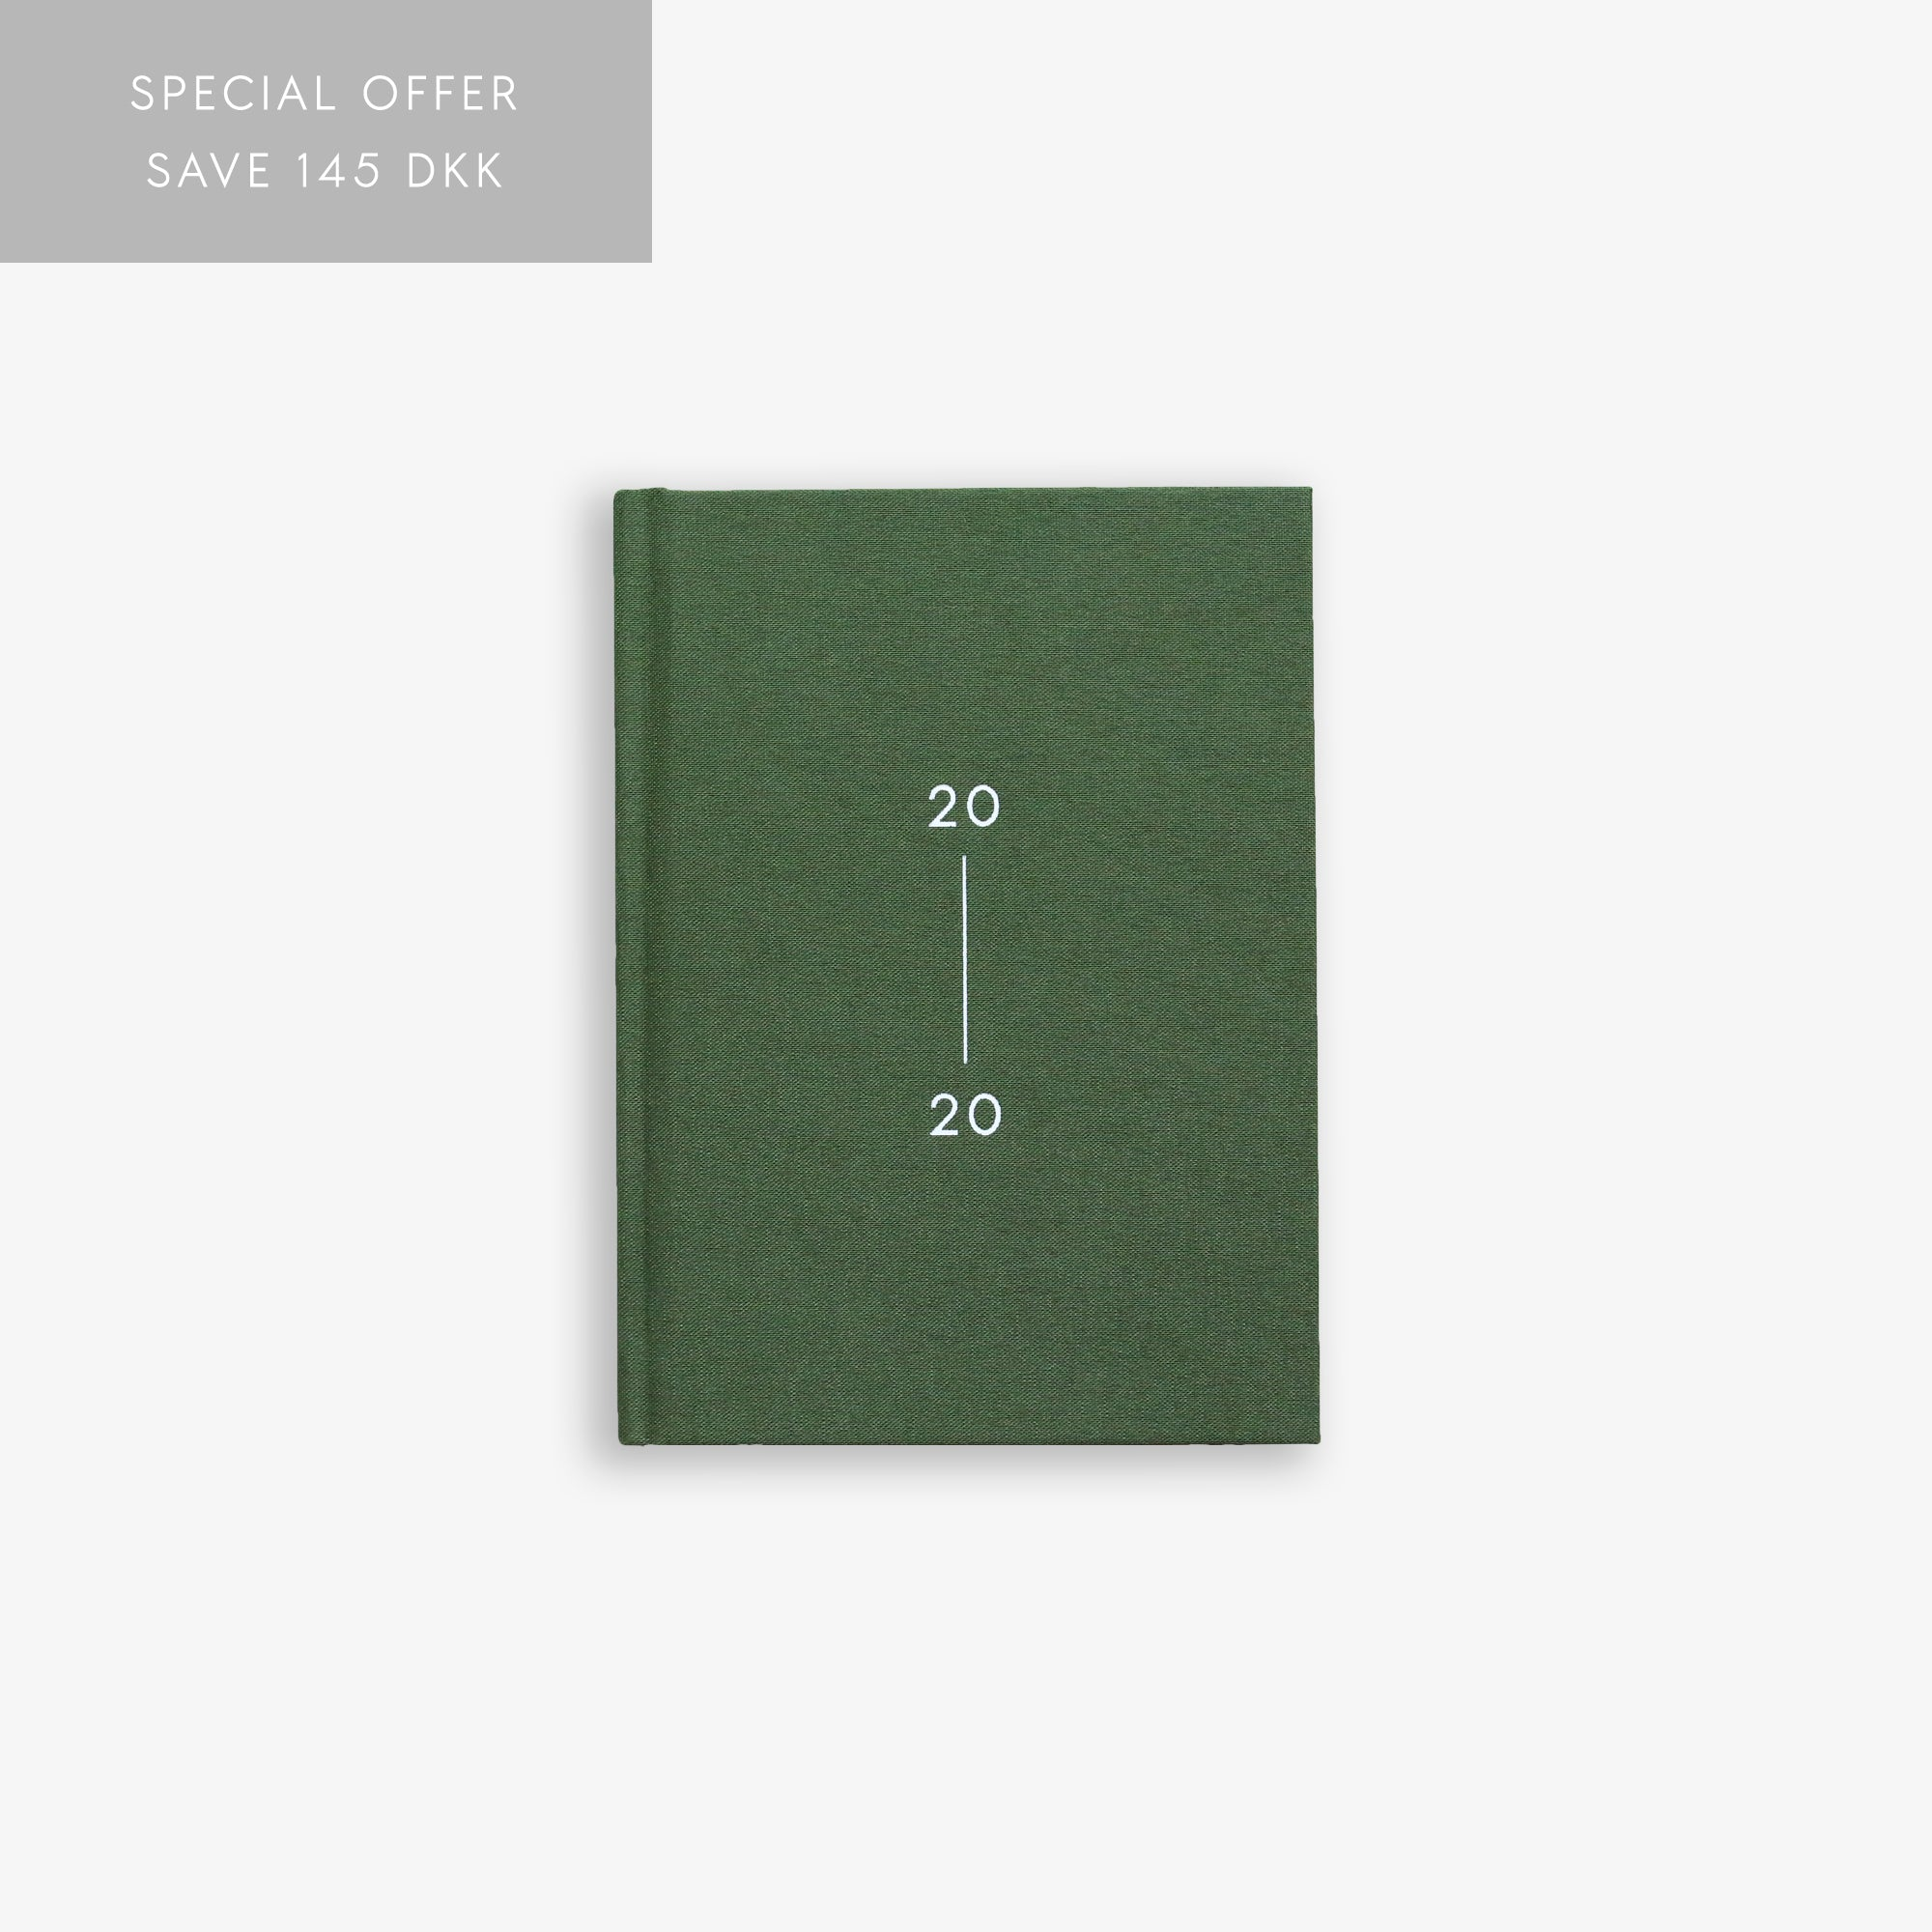 NOTEBOOK CALENDAR 2020 (SPECIAL OFFER)